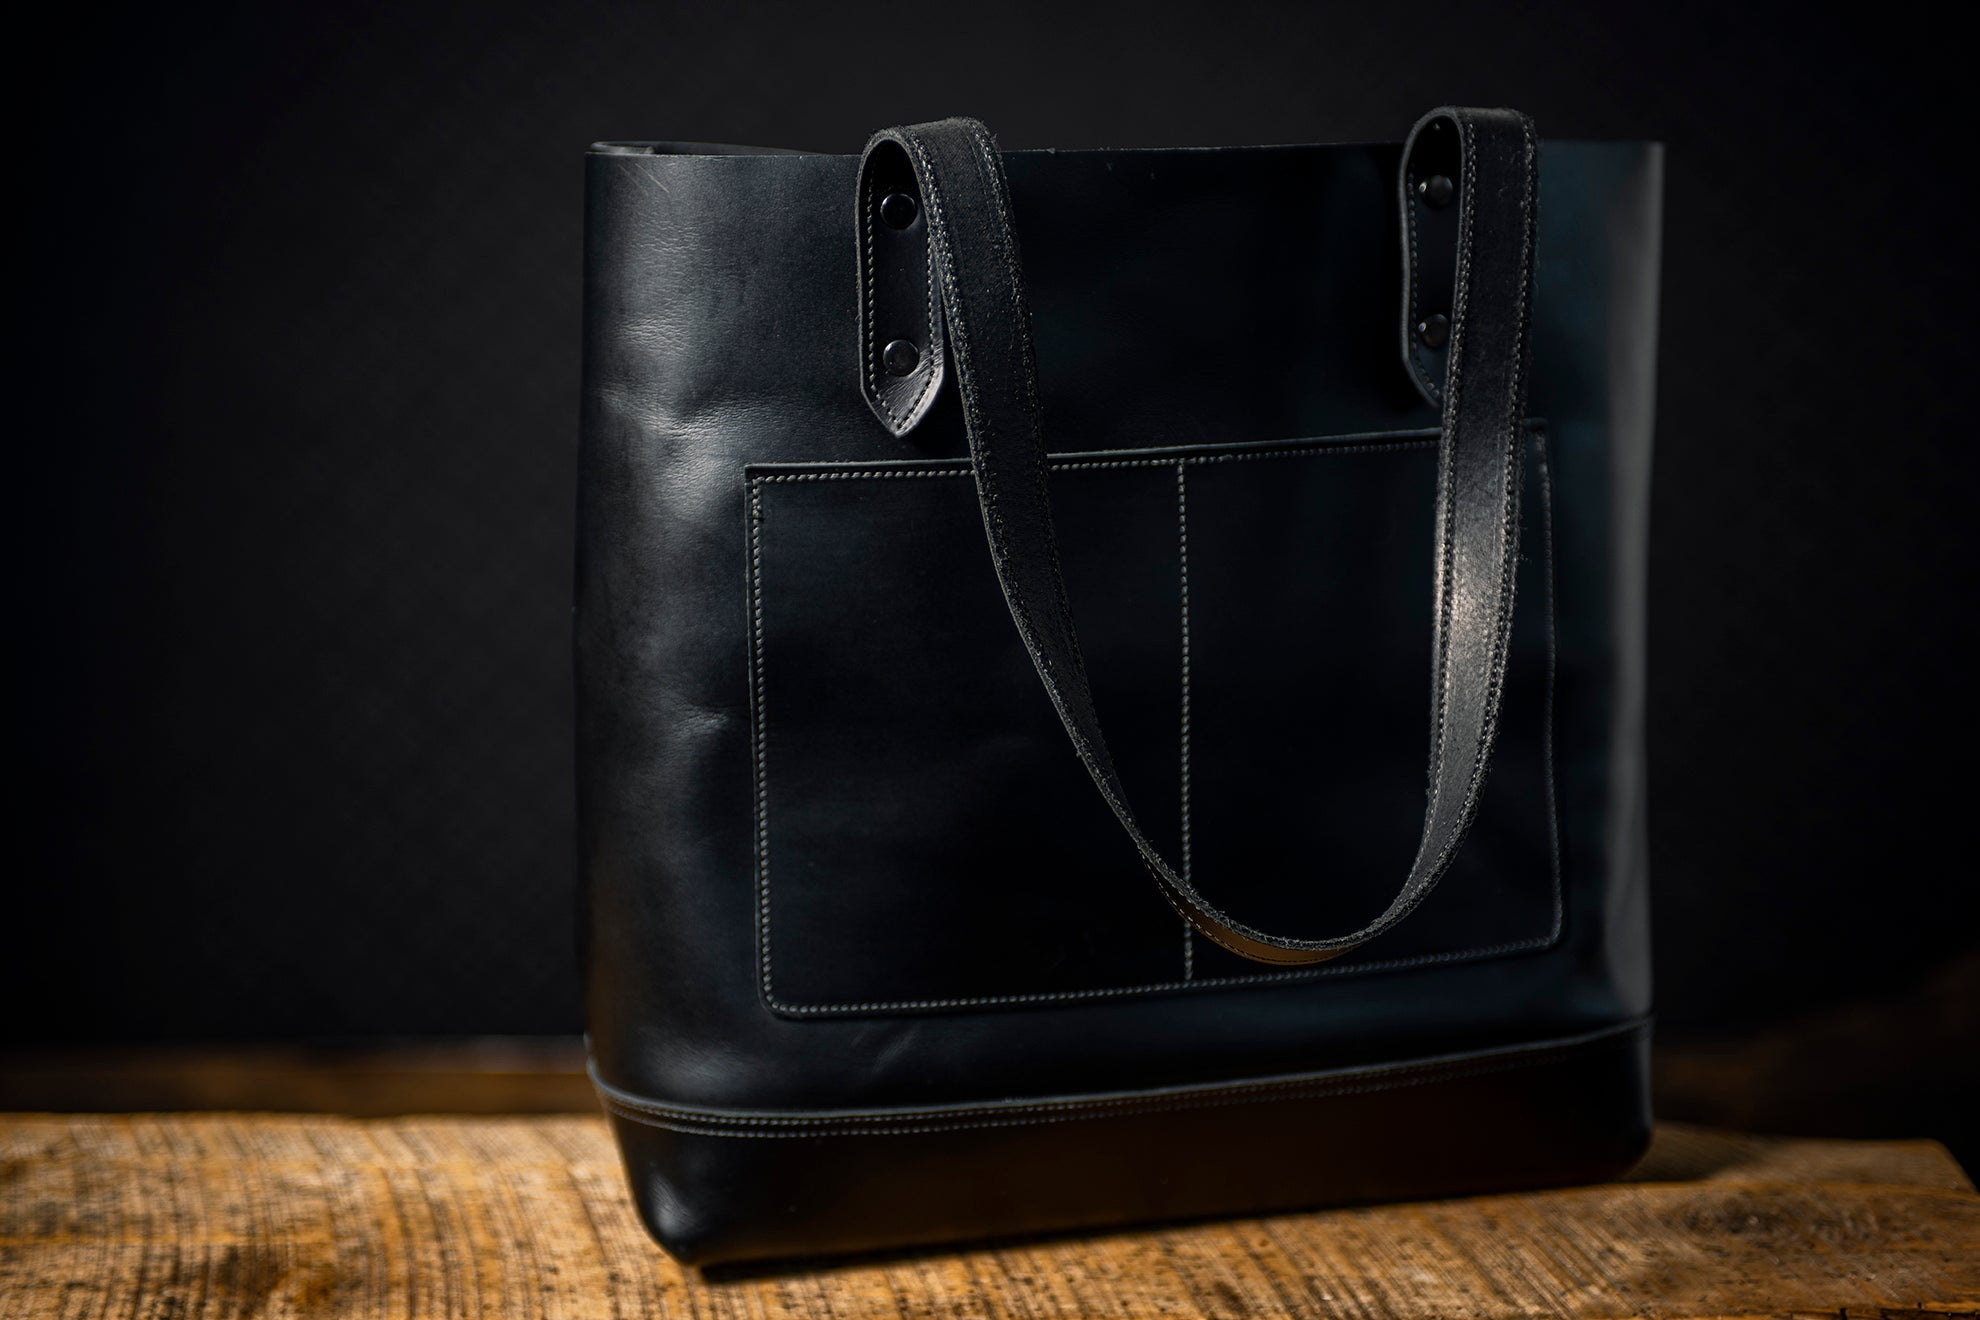 Medea Tote Bag - Midnight Black